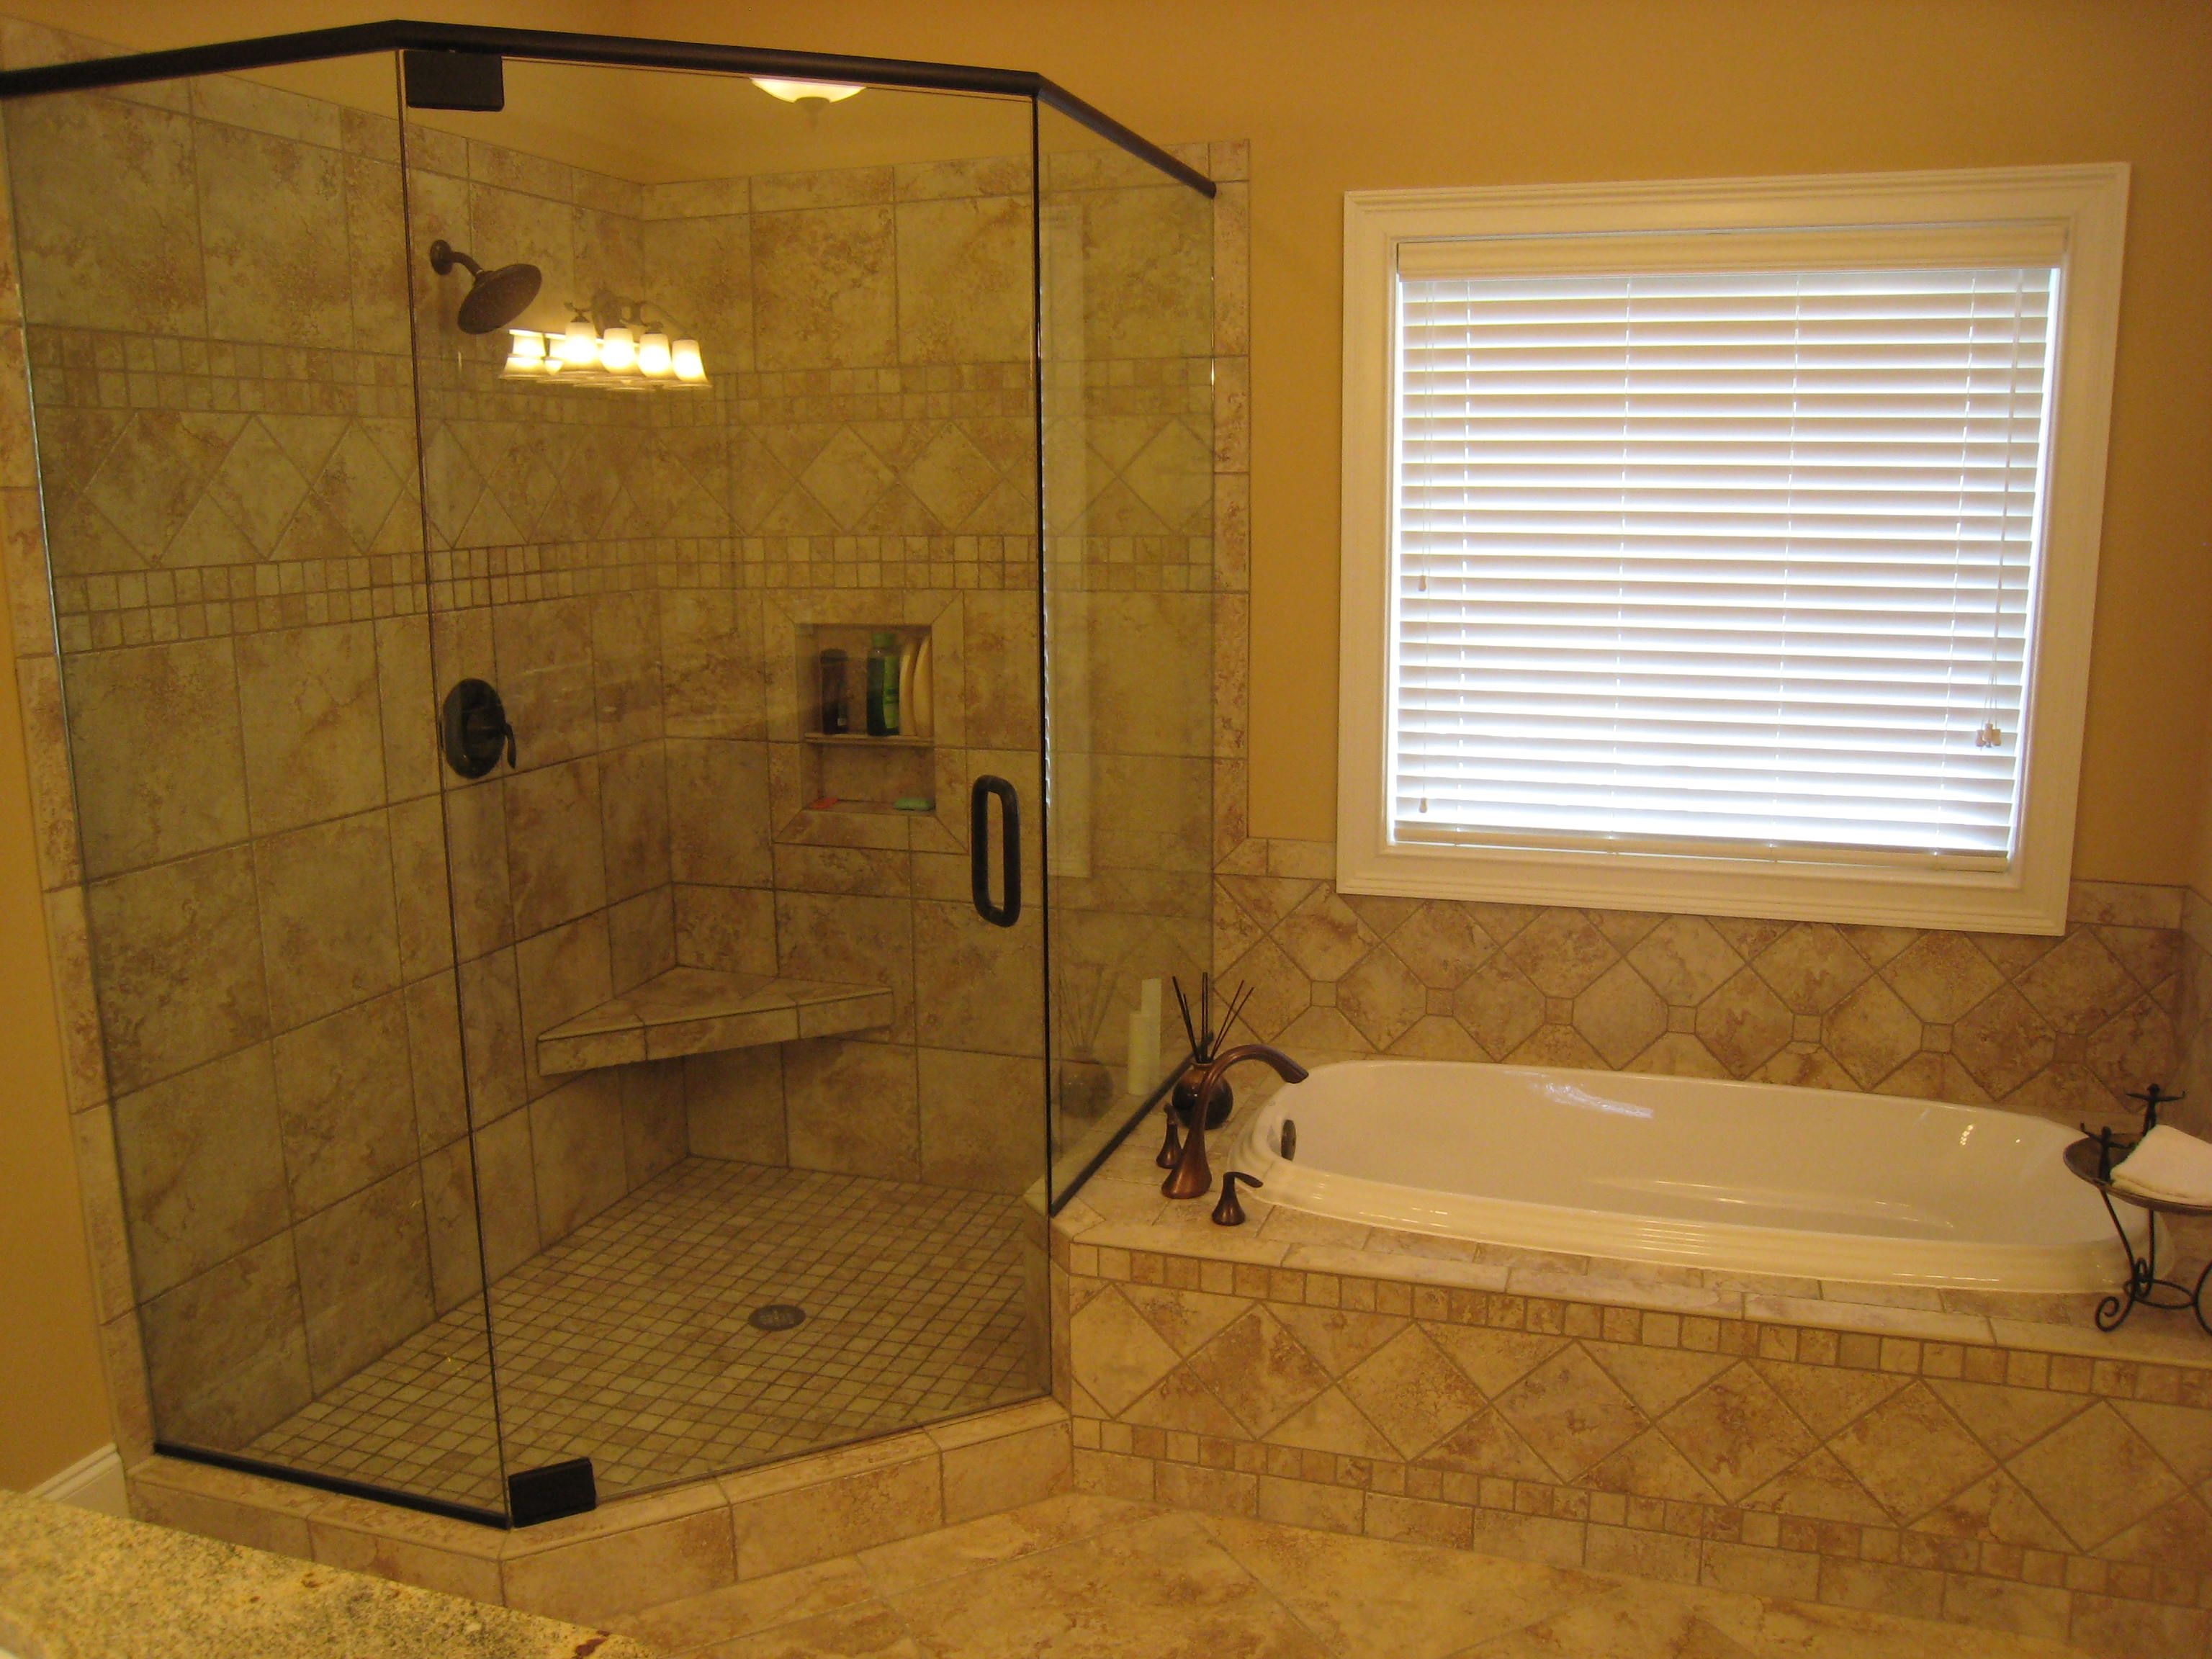 Master Bath Remodel Master Bathroom Remodel Bathroom - Cost effective bathroom remodel for bathroom decor ideas